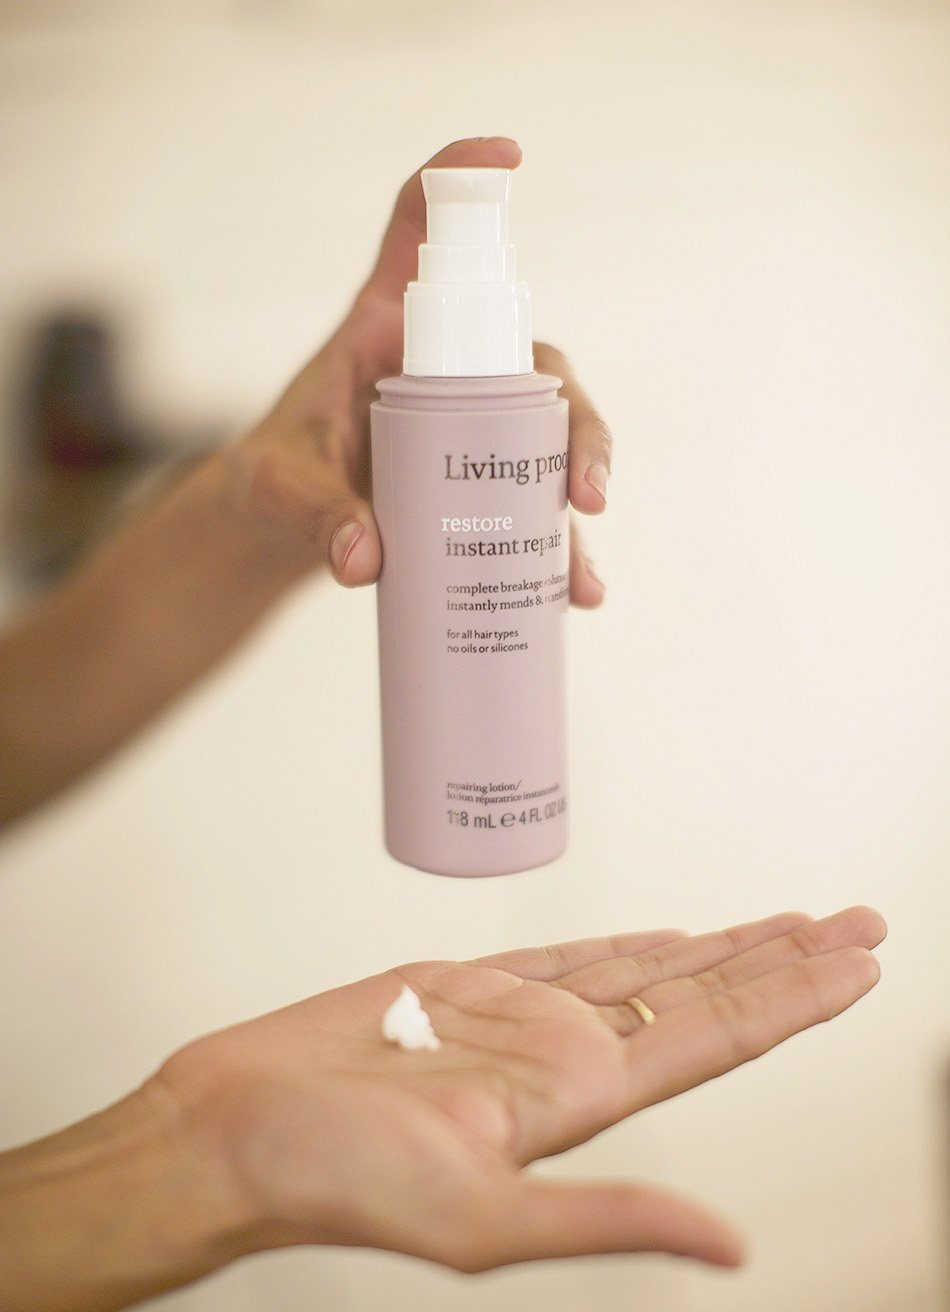 04 living proof restore instant repair